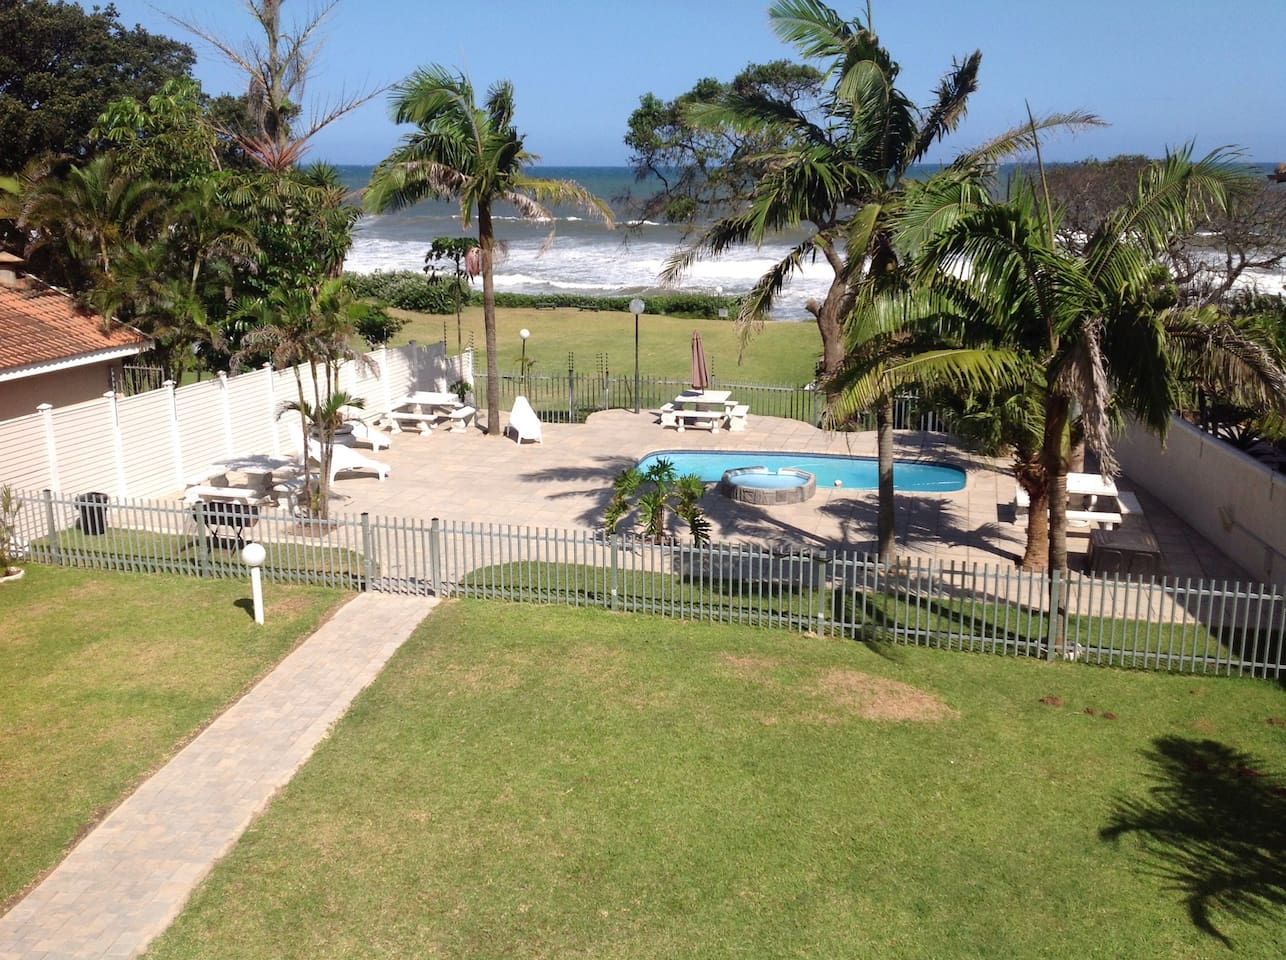 An aerial view of the pool area and deck with gate leading to the beach.